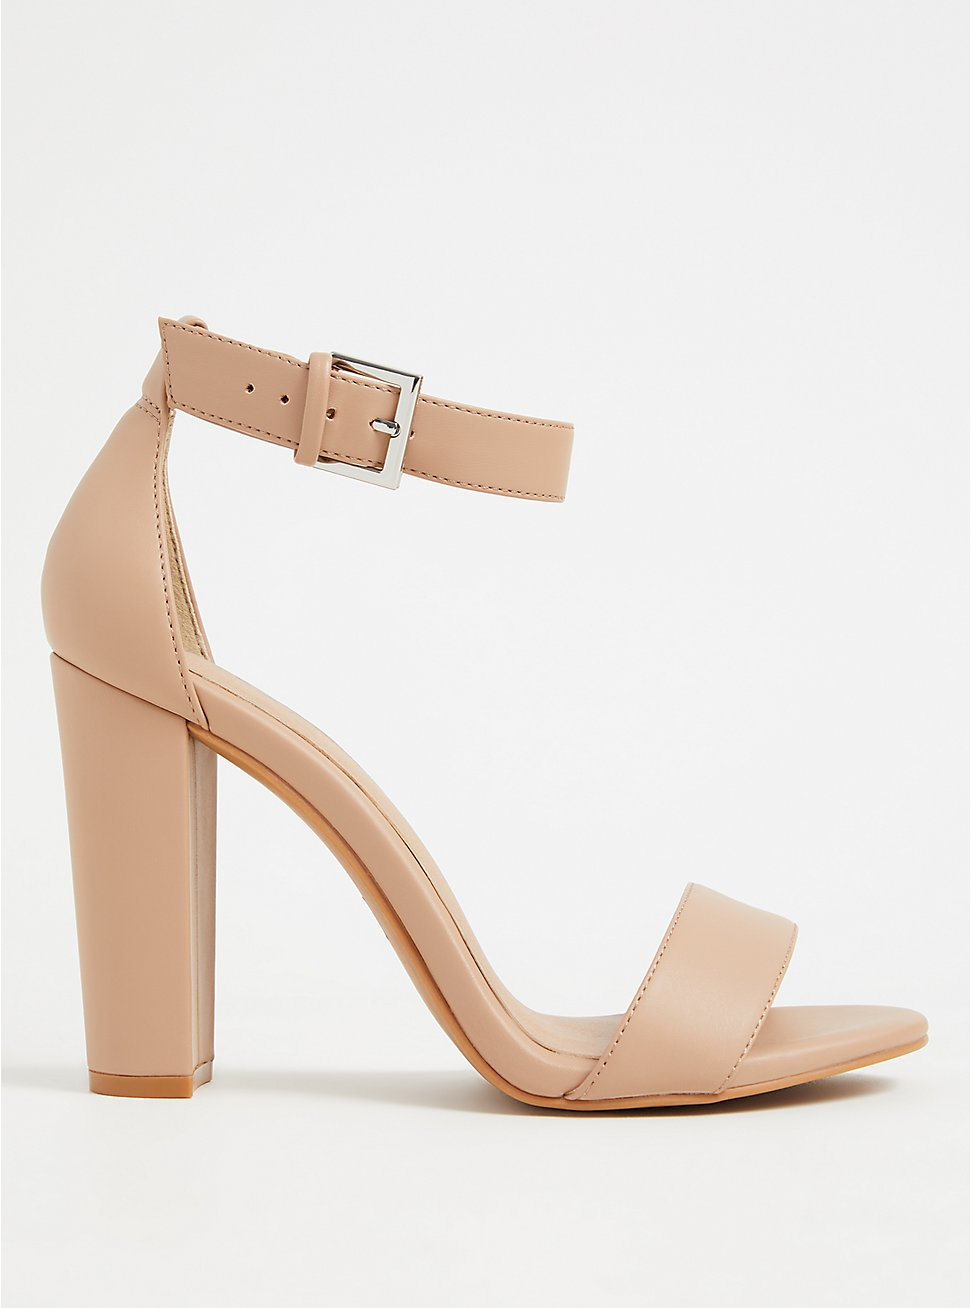 Plus Size Staci - Beige Faux Leather Ankle Strap Tapered Heel (WW), BEIGE, hi-res